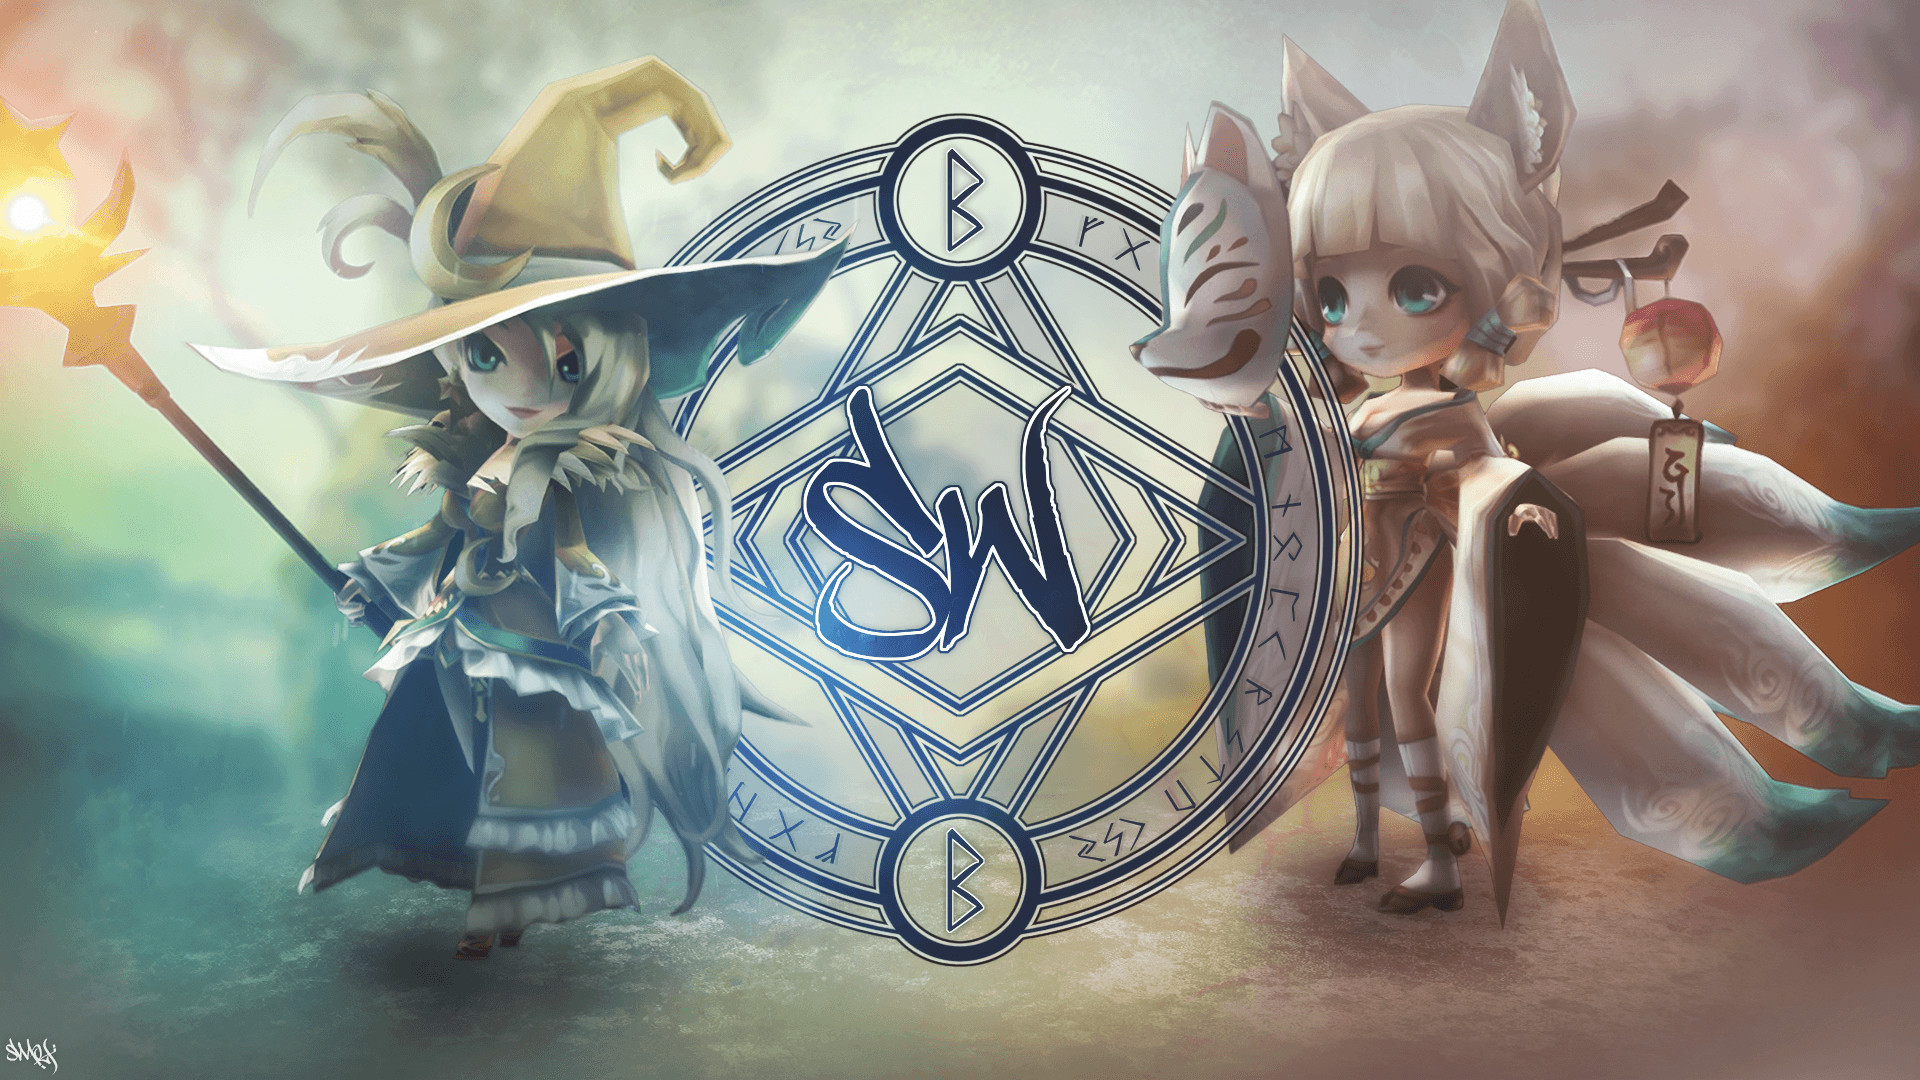 Res: 1920x1080, Does the sub like this Summoners War Wallpaper? : summonerswar